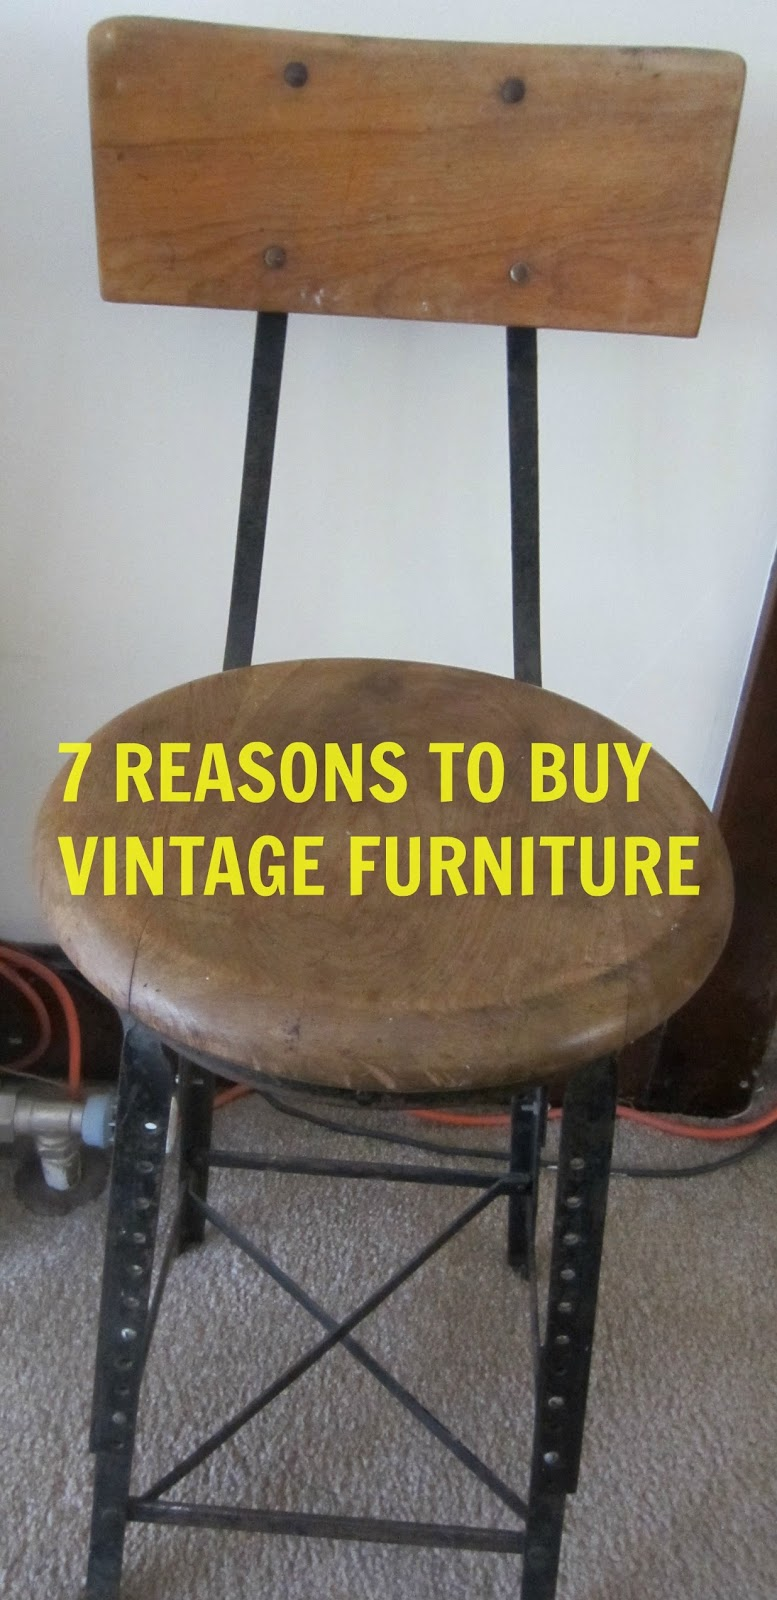 Beau Why Do I Like Vintage, Antique, Rustic....old Stuff? Why Canu0027t I Just Buy  My Furniture At Pottery Barn Or Wherever Else Nice New Furniture Is Sold?